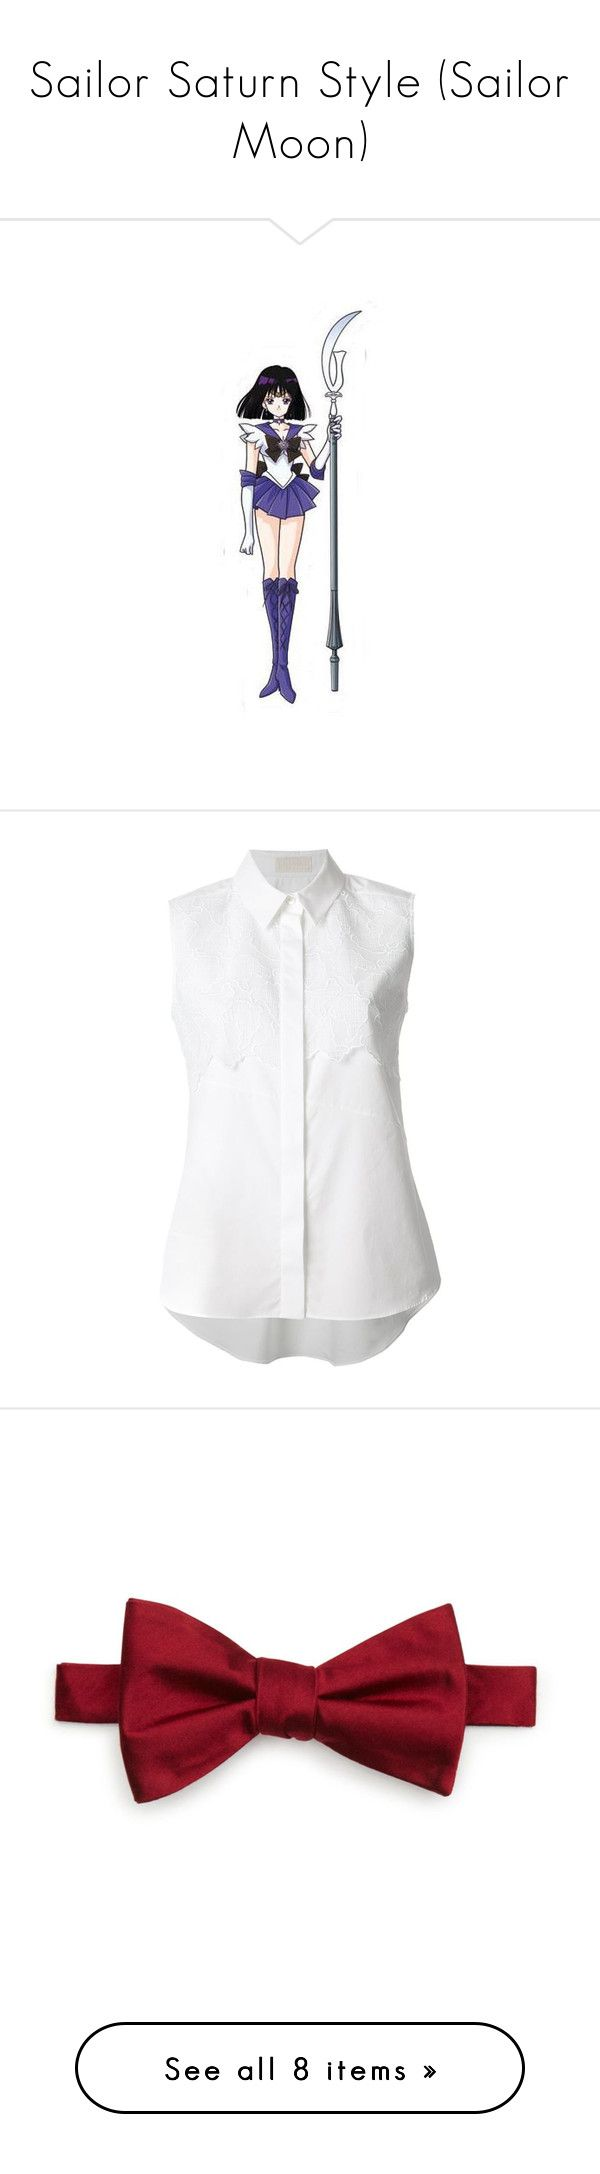 """""""Sailor Saturn Style (Sailor Moon)"""" by briony-jae ❤ liked on Polyvore featuring anime, tops, blouses, shirts, blusas, sleeveless shirts, white sleeveless blouse, sleeveless blouse, white blouse and cotton blouse"""